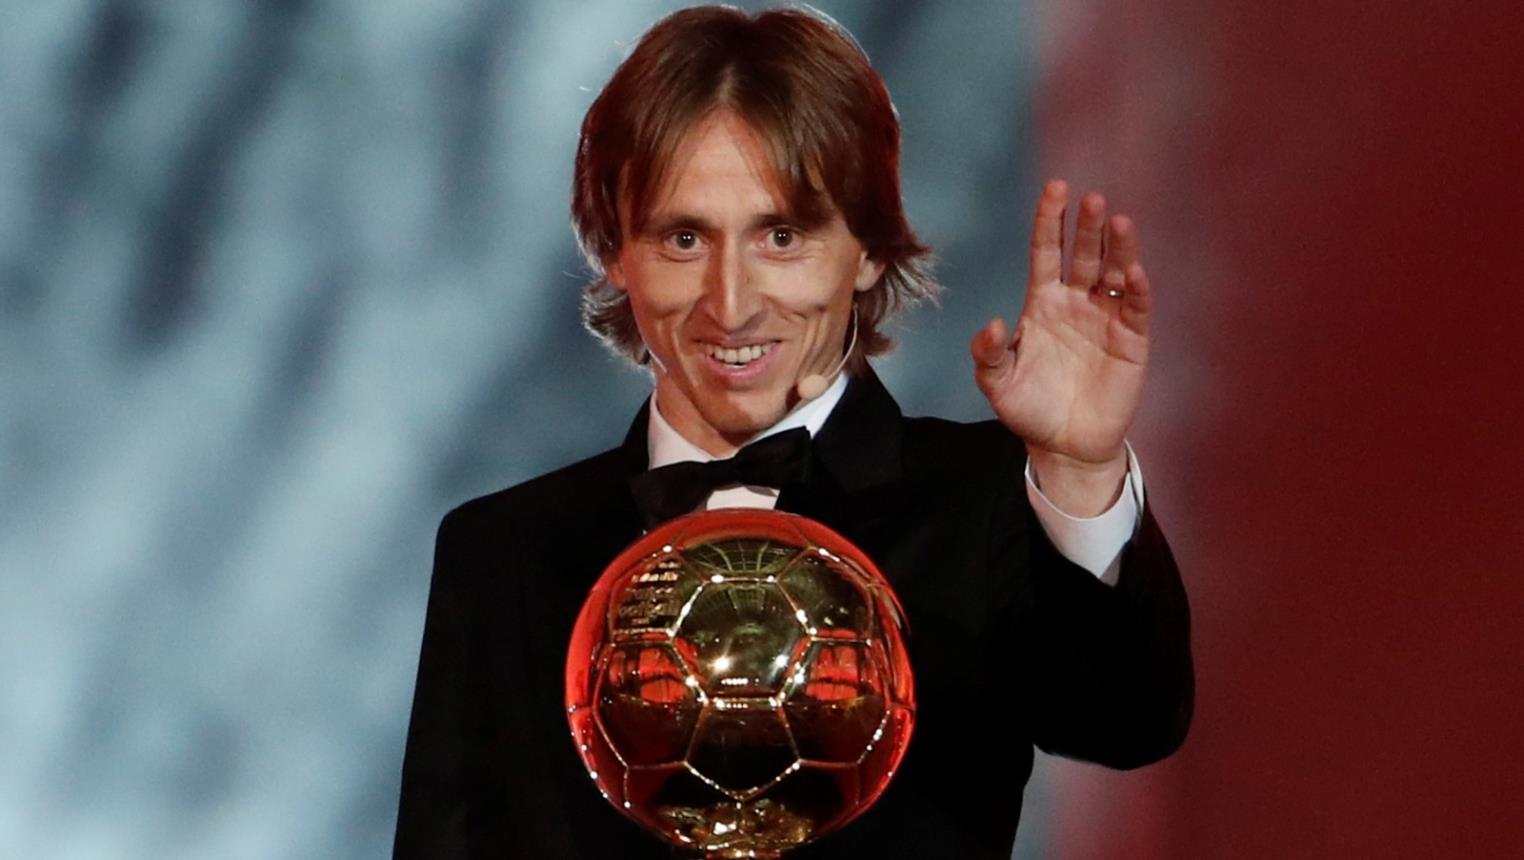 Luka Modric won 2018 Ballon d'Or